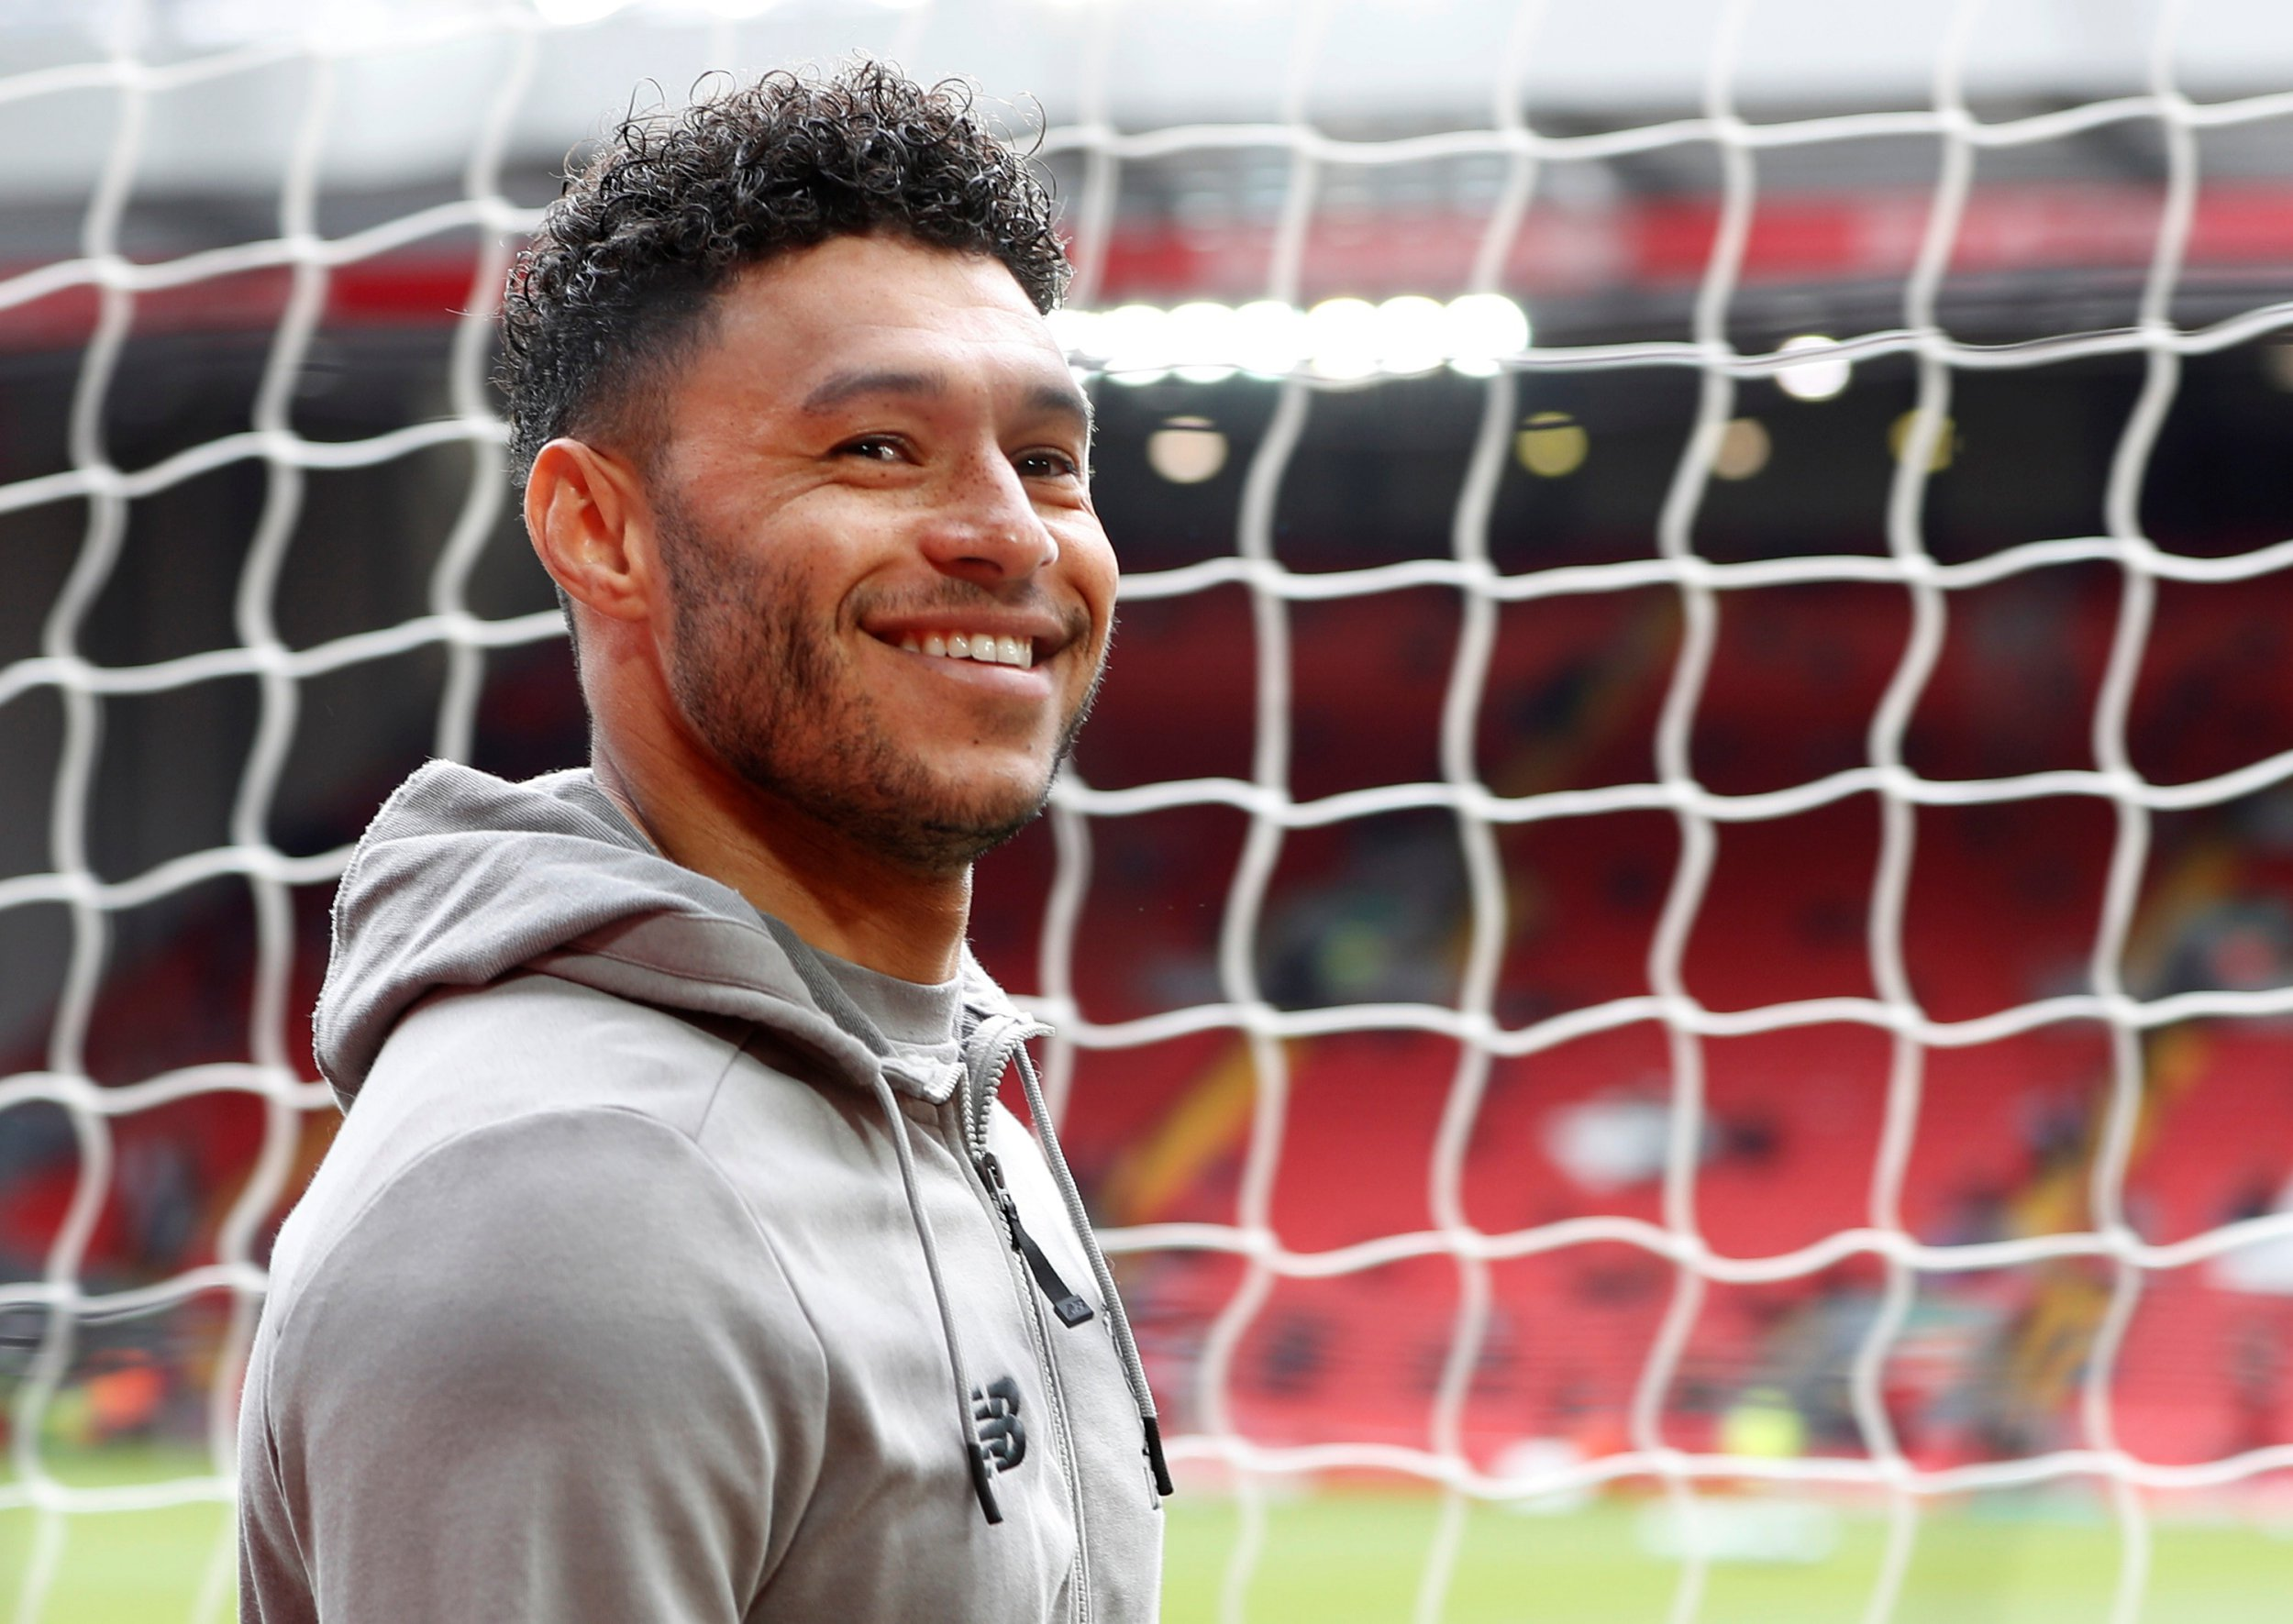 """Soccer Football - Premier League - Liverpool v Tottenham Hotspur - Anfield, Liverpool, Britain - March 31, 2019 Liverpool's Alex Oxlade-Chamberlain before the match Action Images via Reuters/Paul Childs EDITORIAL USE ONLY. No use with unauthorized audio, video, data, fixture lists, club/league logos or """"live"""" services. Online in-match use limited to 75 images, no video emulation. No use in betting, games or single club/league/player publications. Please contact your account representative for further details."""